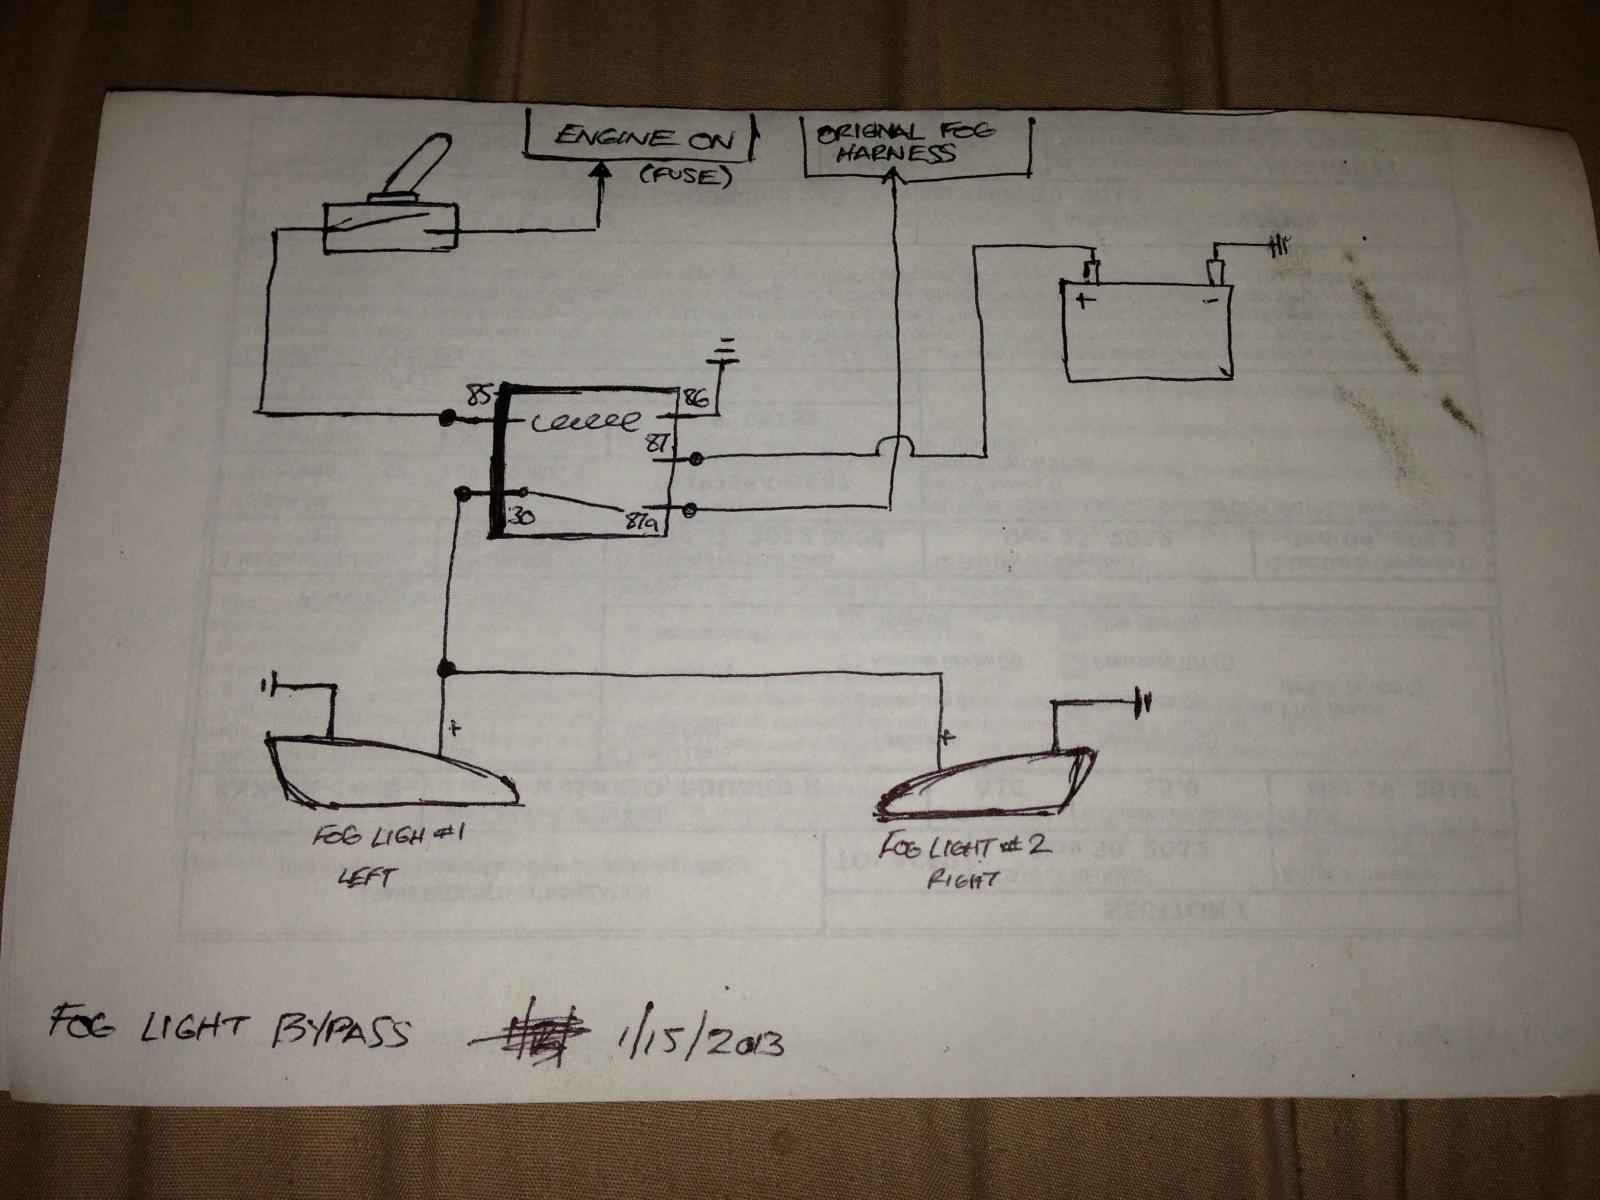 simple wiring diagram to bypass foglights works w o headlights or w rh  optimaforums com